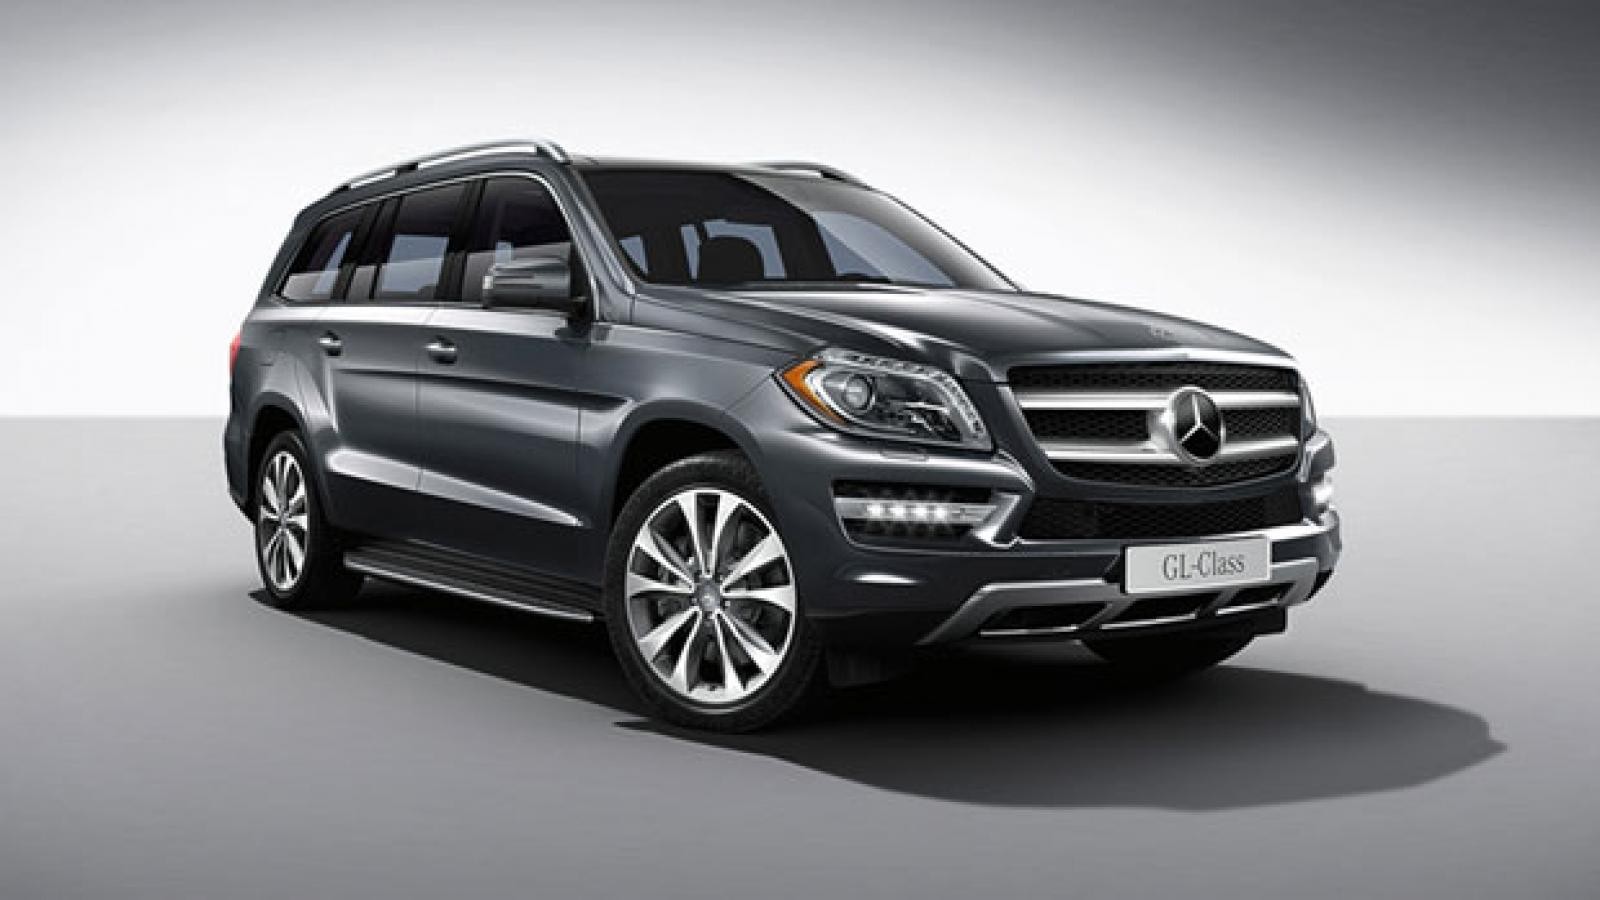 2015 mercedes benz gl class information and photos zombiedrive. Black Bedroom Furniture Sets. Home Design Ideas